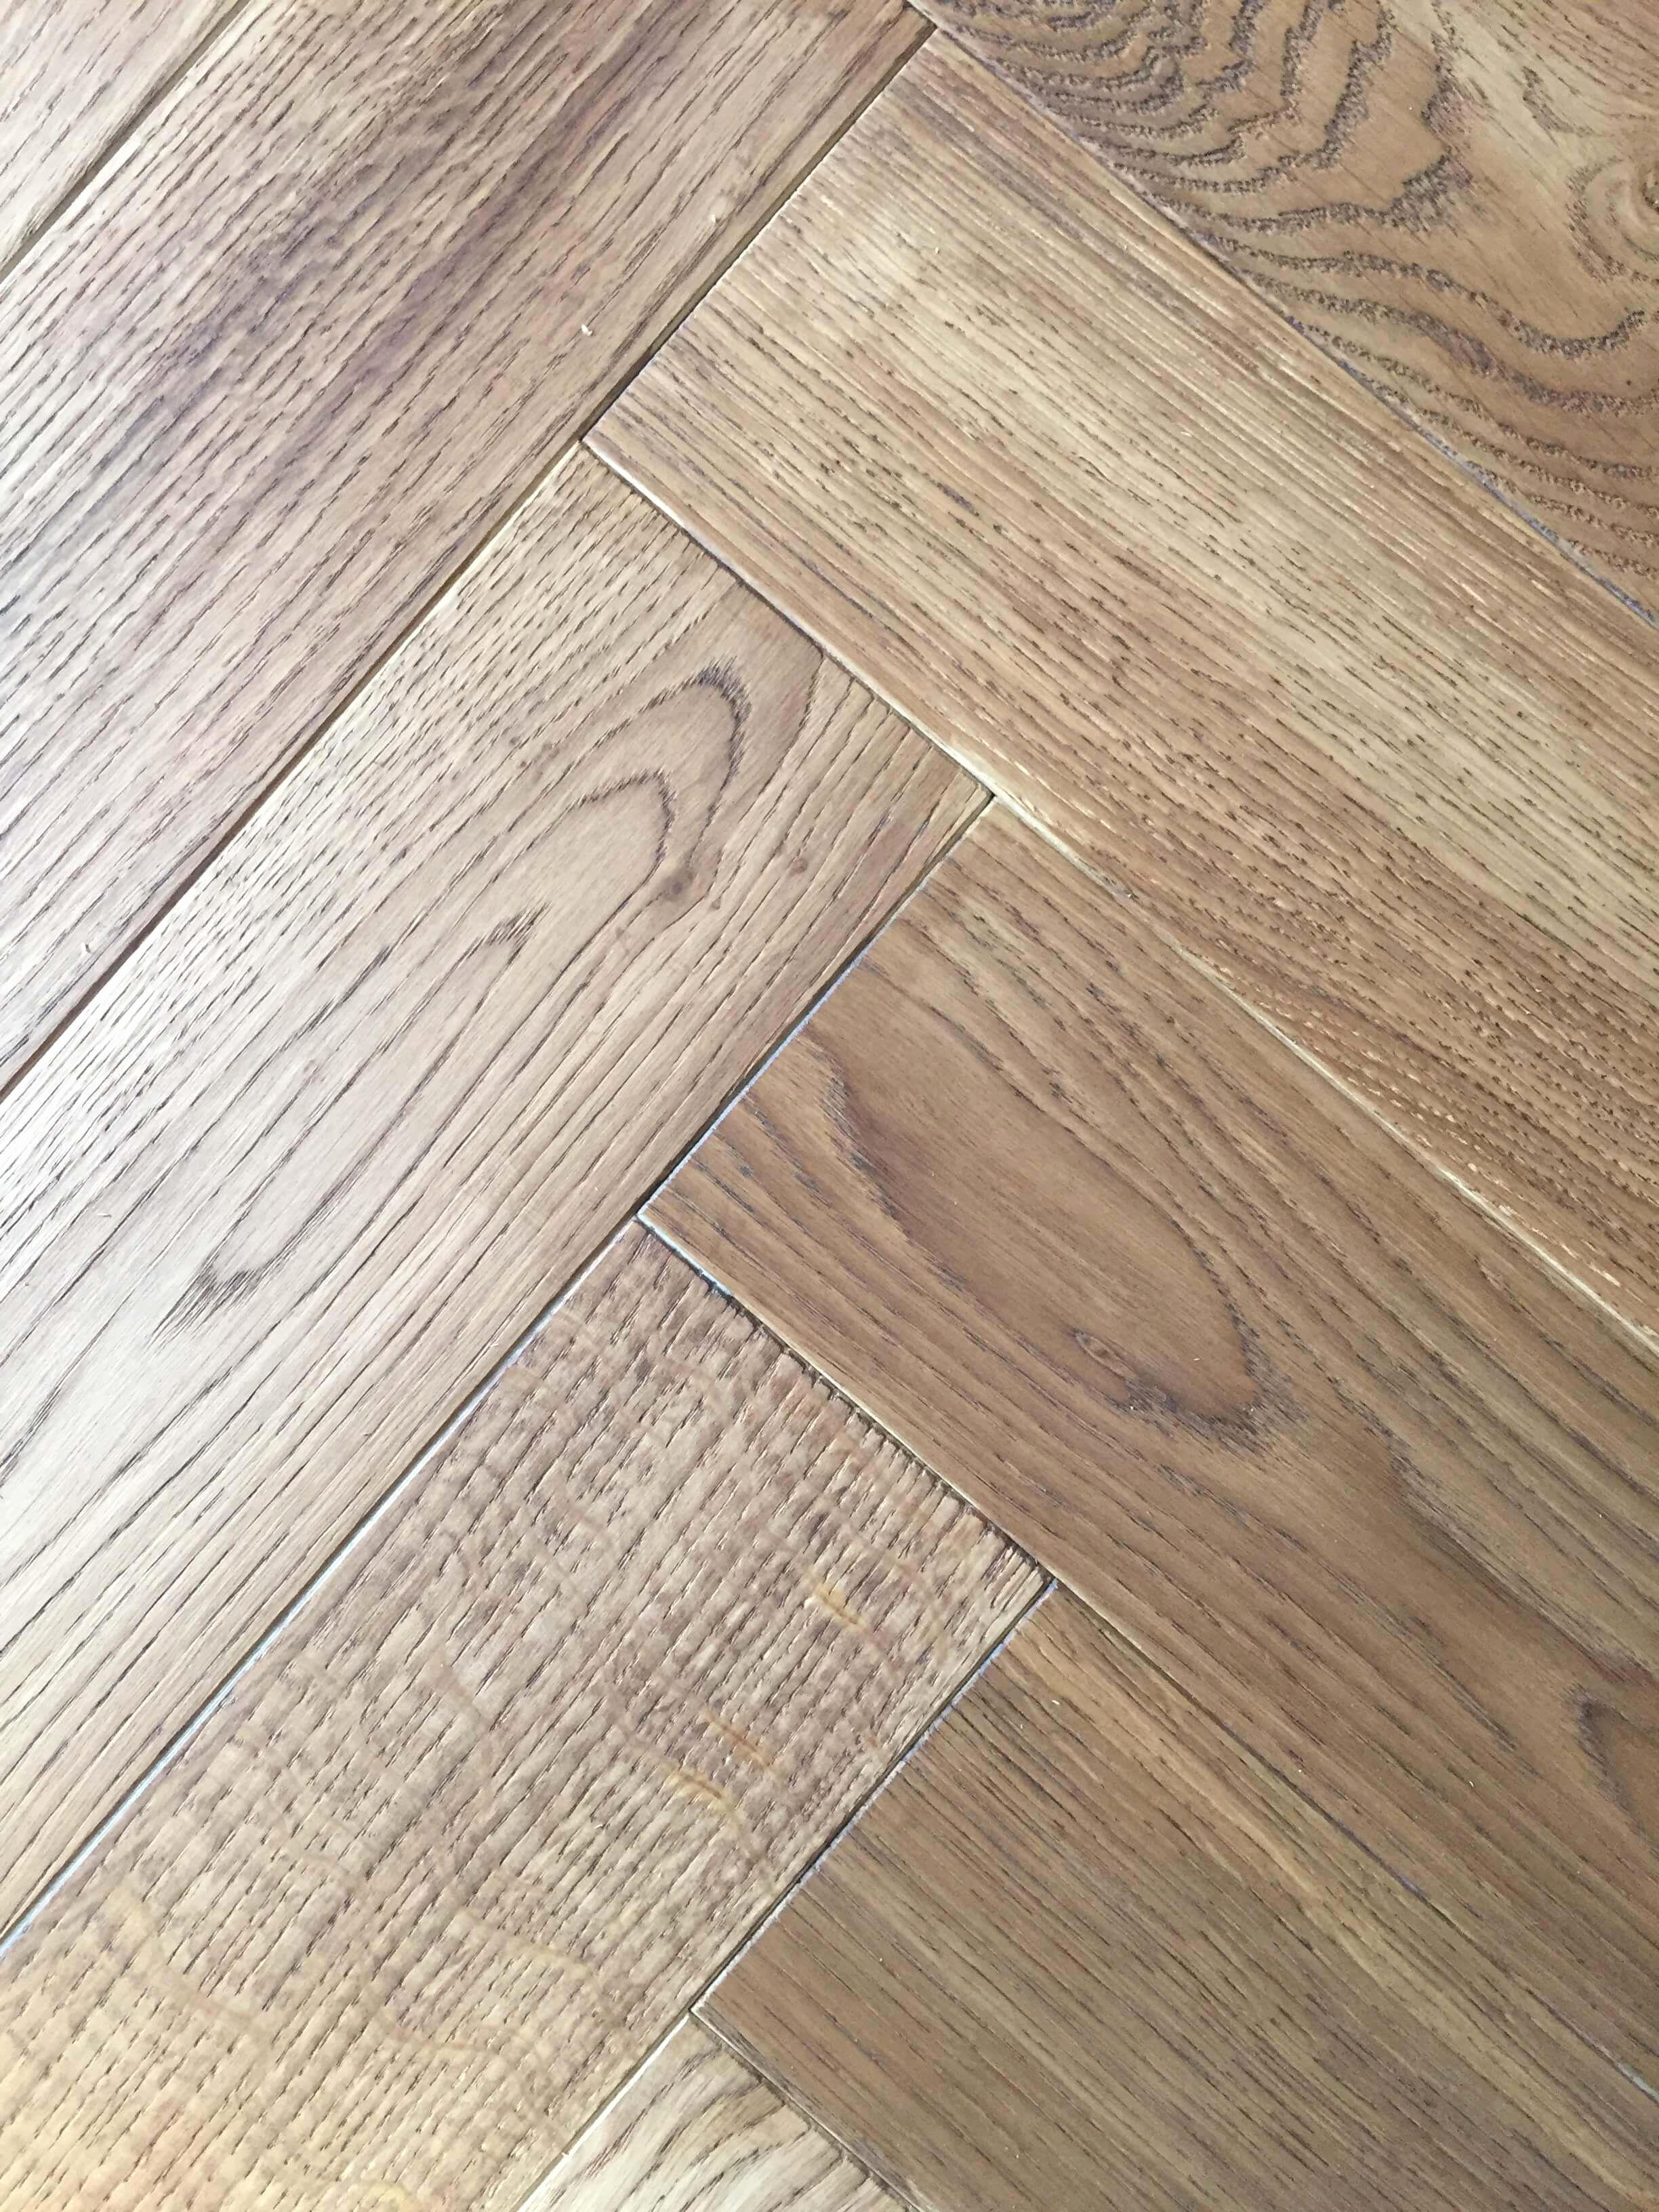 hardwood floor tile home depot of hardwood flooring sale inspirational 20 luxury prefinished oak pertaining to hardwood flooring sale best of home design ceramic tile that looks like hardwood lovely wood look hardwood flooring